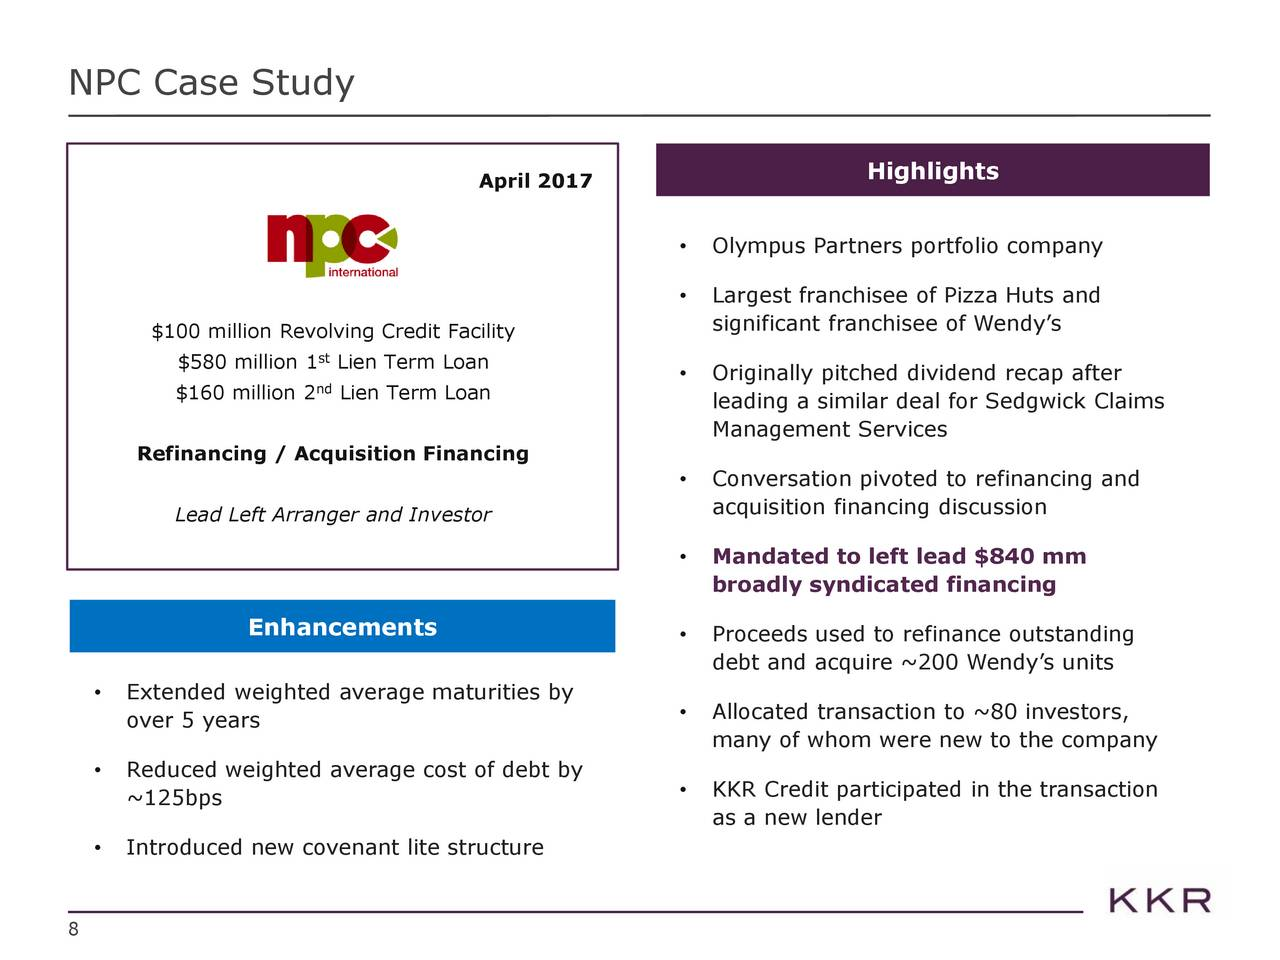 kkr case study Case studies describe how kkr's responsible investing approach provides real solutions to critical some of the case studies illustrate our commitment to integrating esg management into our.